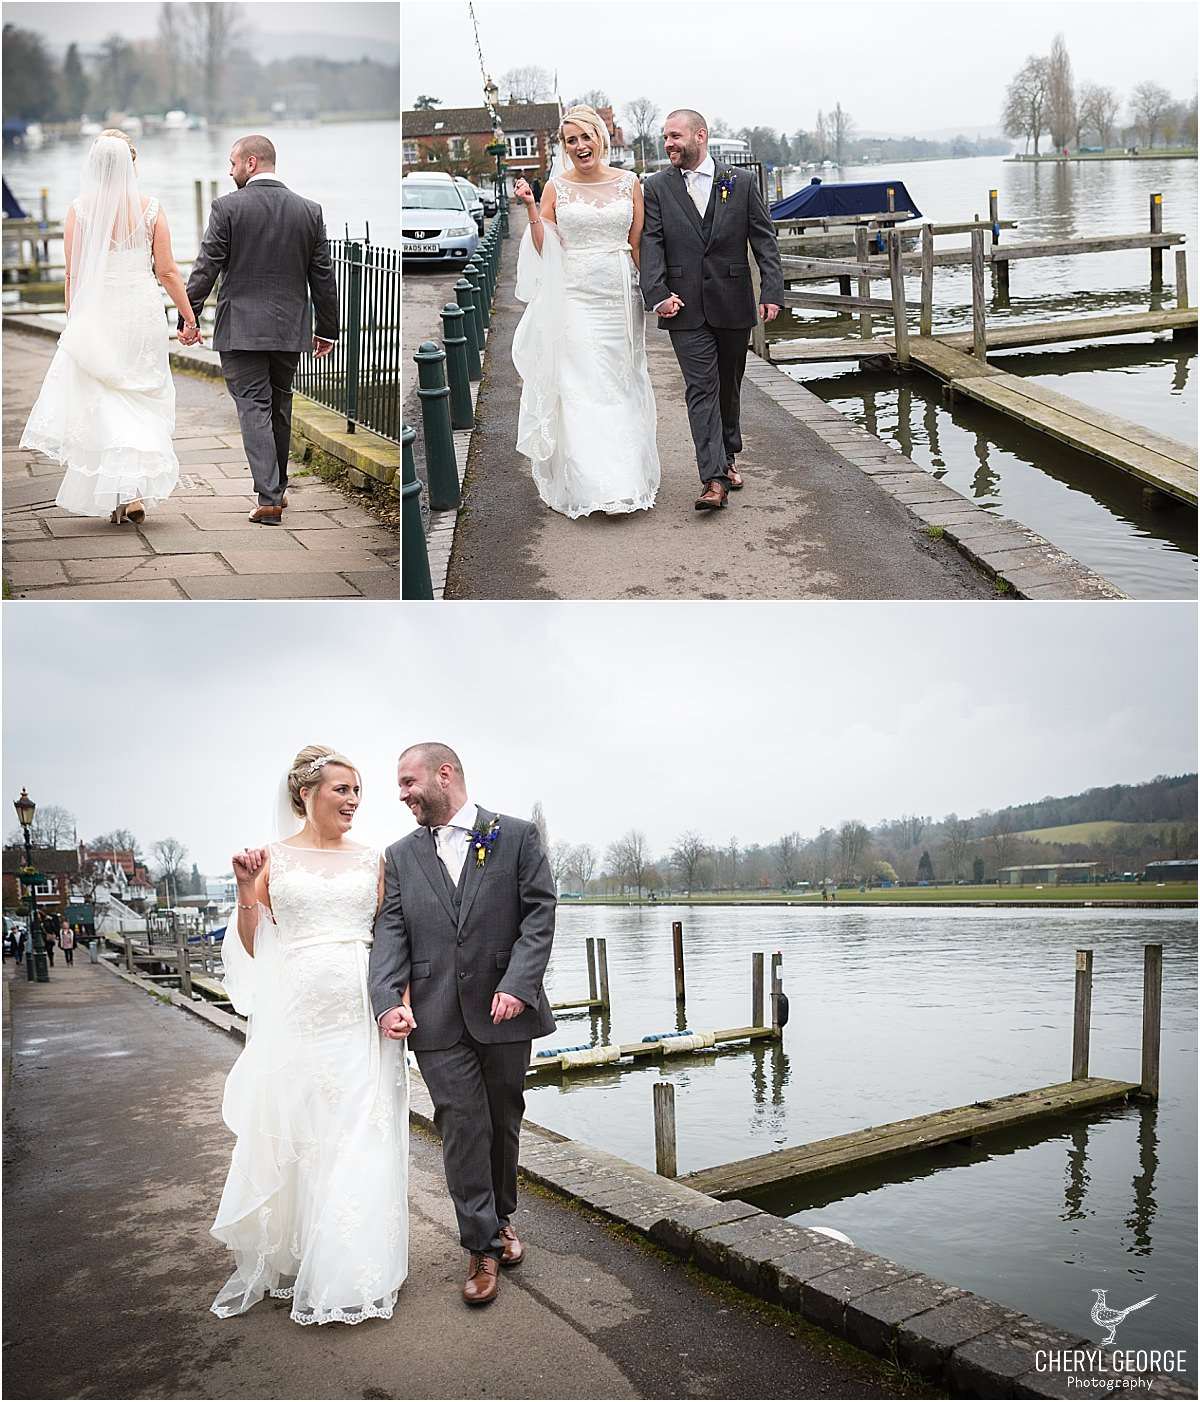 Old Luxters Barn Wedding Venue Henley On Thames: Red Lion Henley Wedding Cheryl George Photography (27